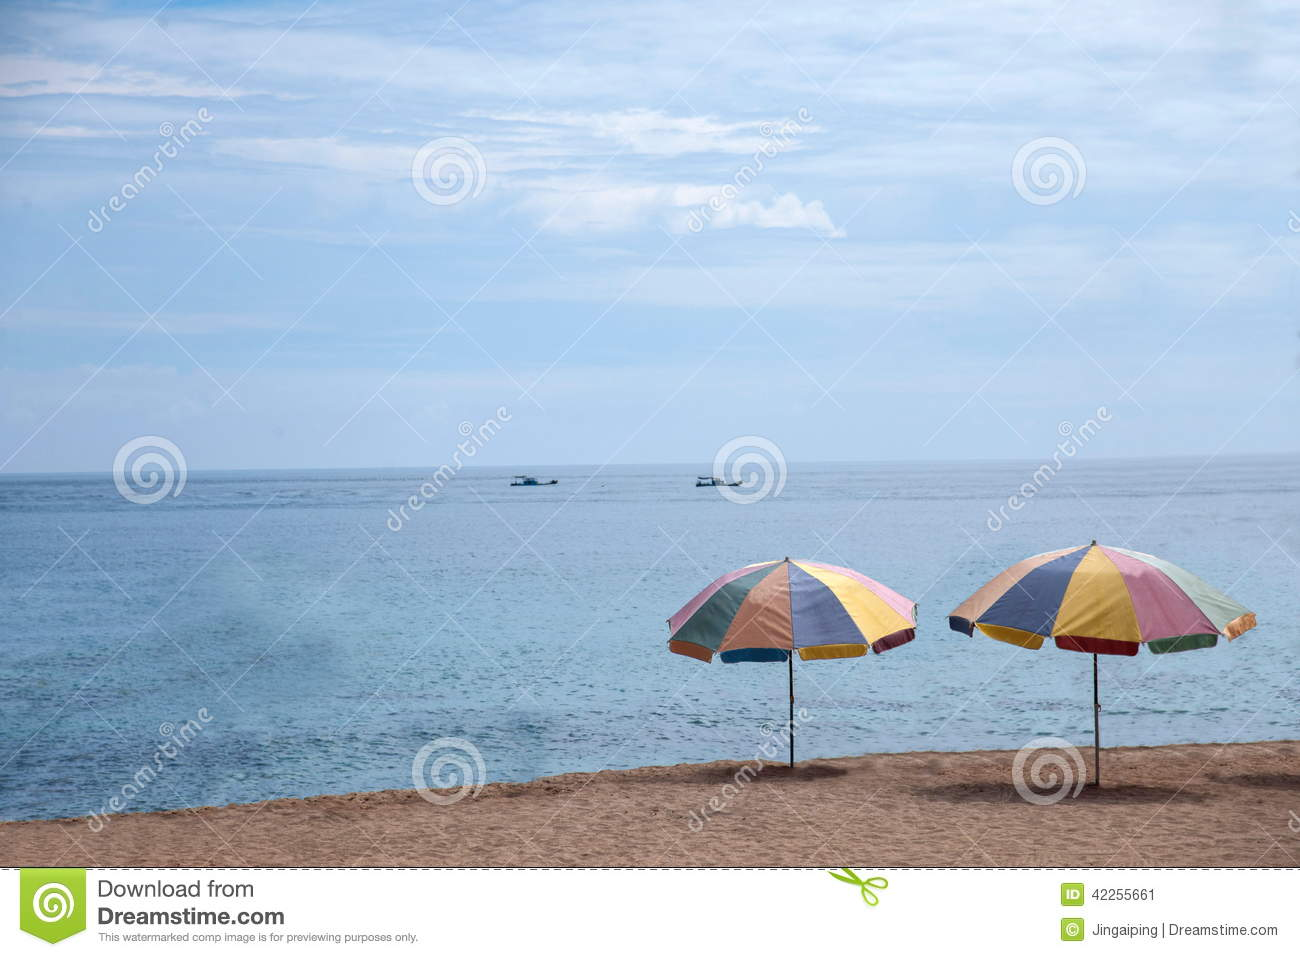 Hengchun Peninsula The Southernmost Island Of Taiwan Kenting National Park White Haven Beach Umbrellas Stock Image Image Of Attractions Natural 42255661